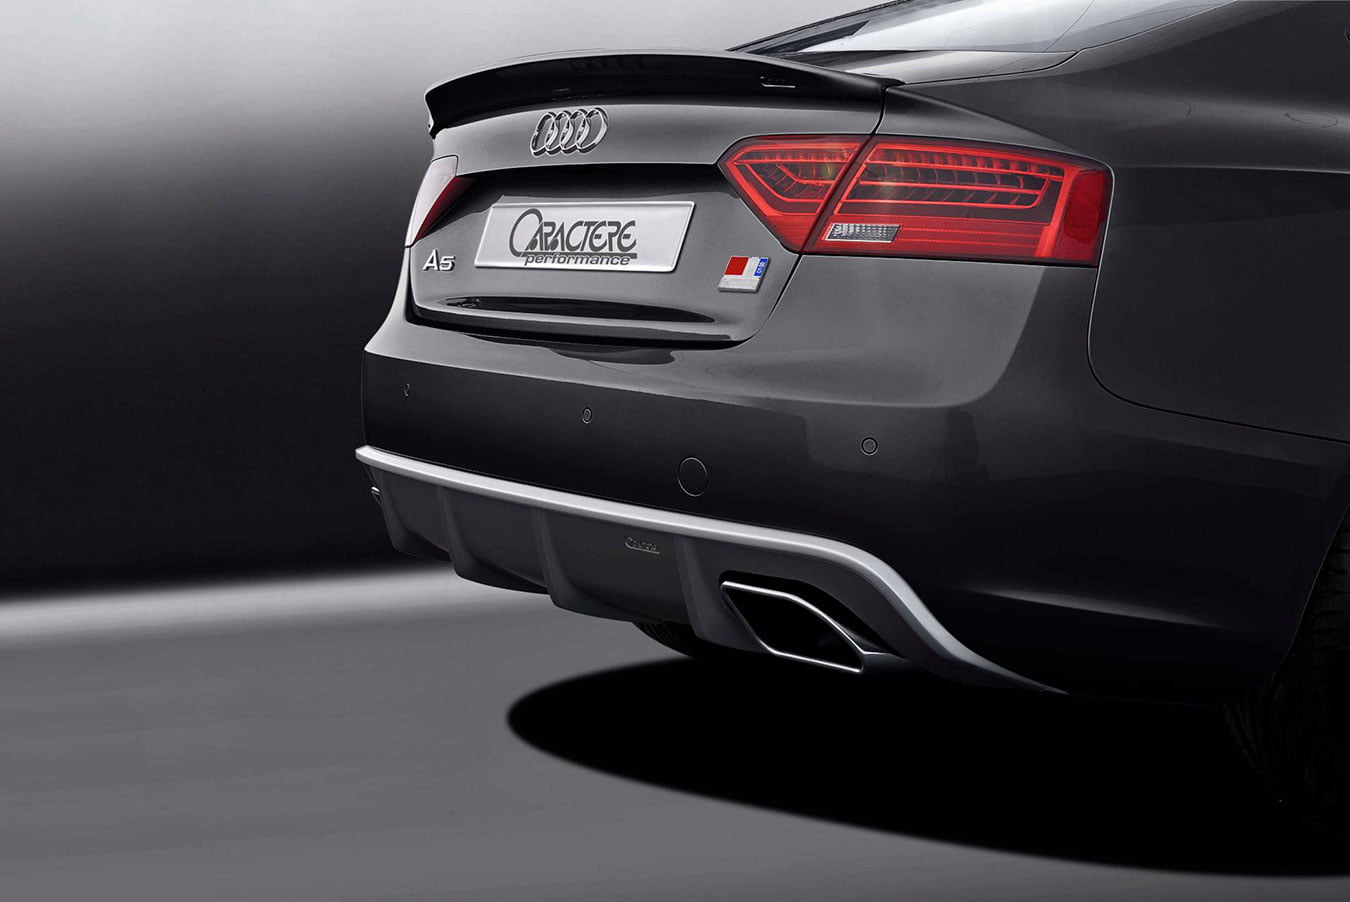 Caractere Rear Diffuser with Dual Exhaust, fits Audi A5 B8.5 2.0 TFSI